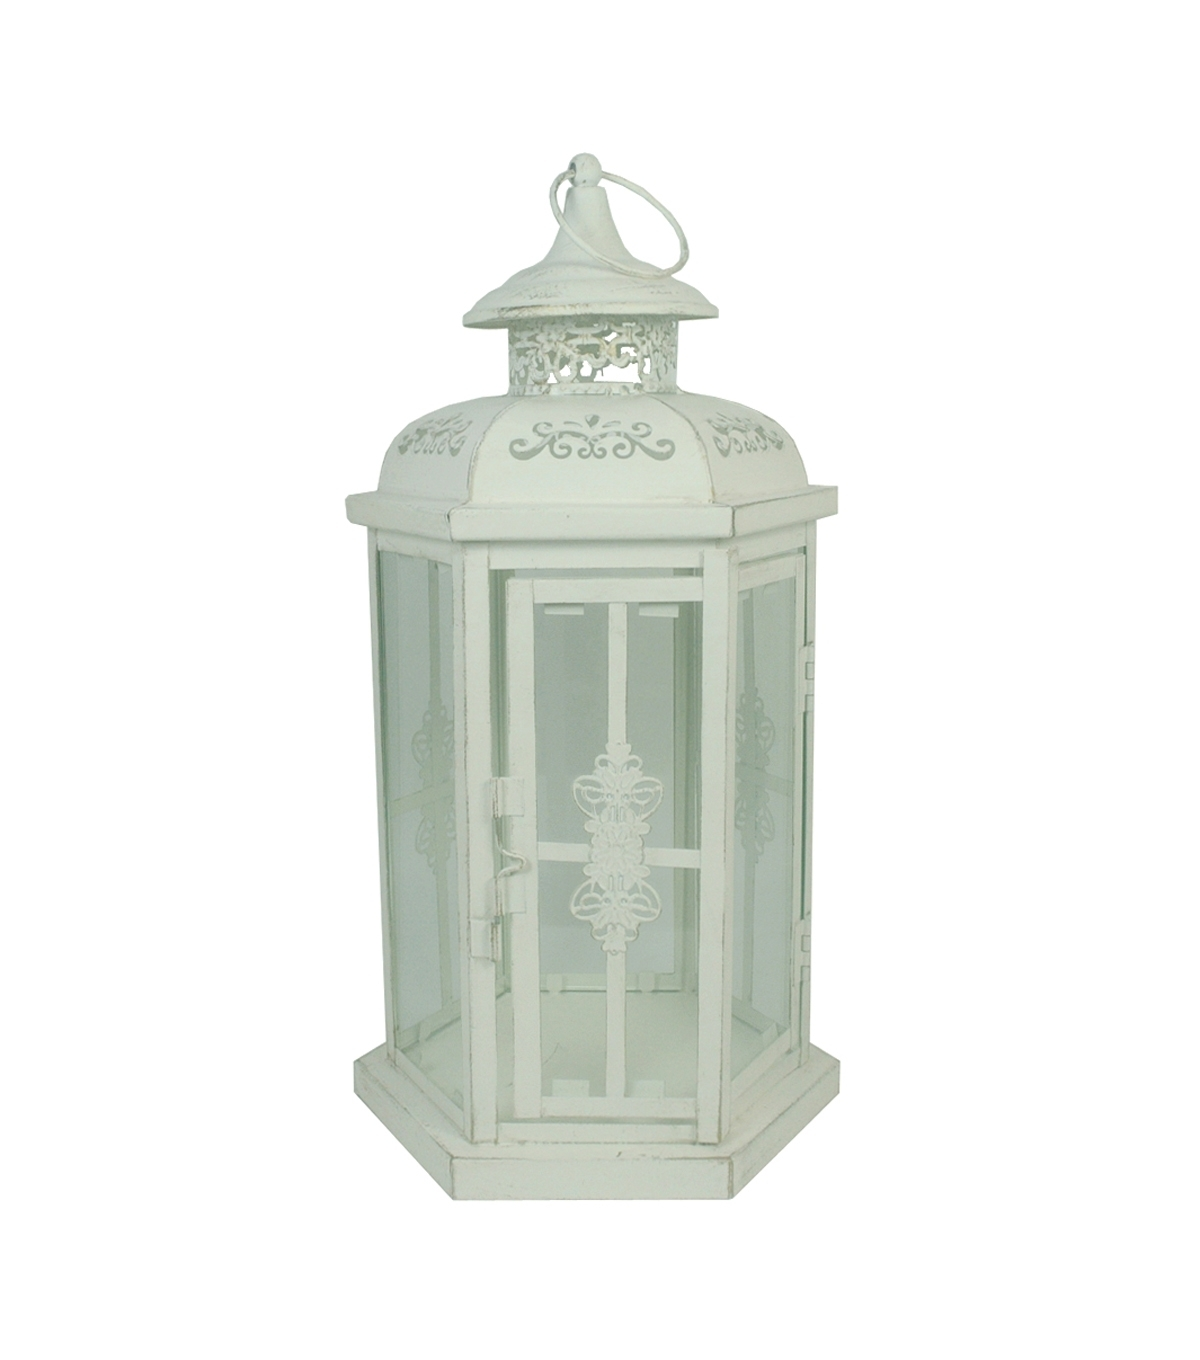 Popular Joanns Outdoor Lanterns Intended For Hudson 43 Candle & Light Distressed Metal Lantern (View 6 of 20)